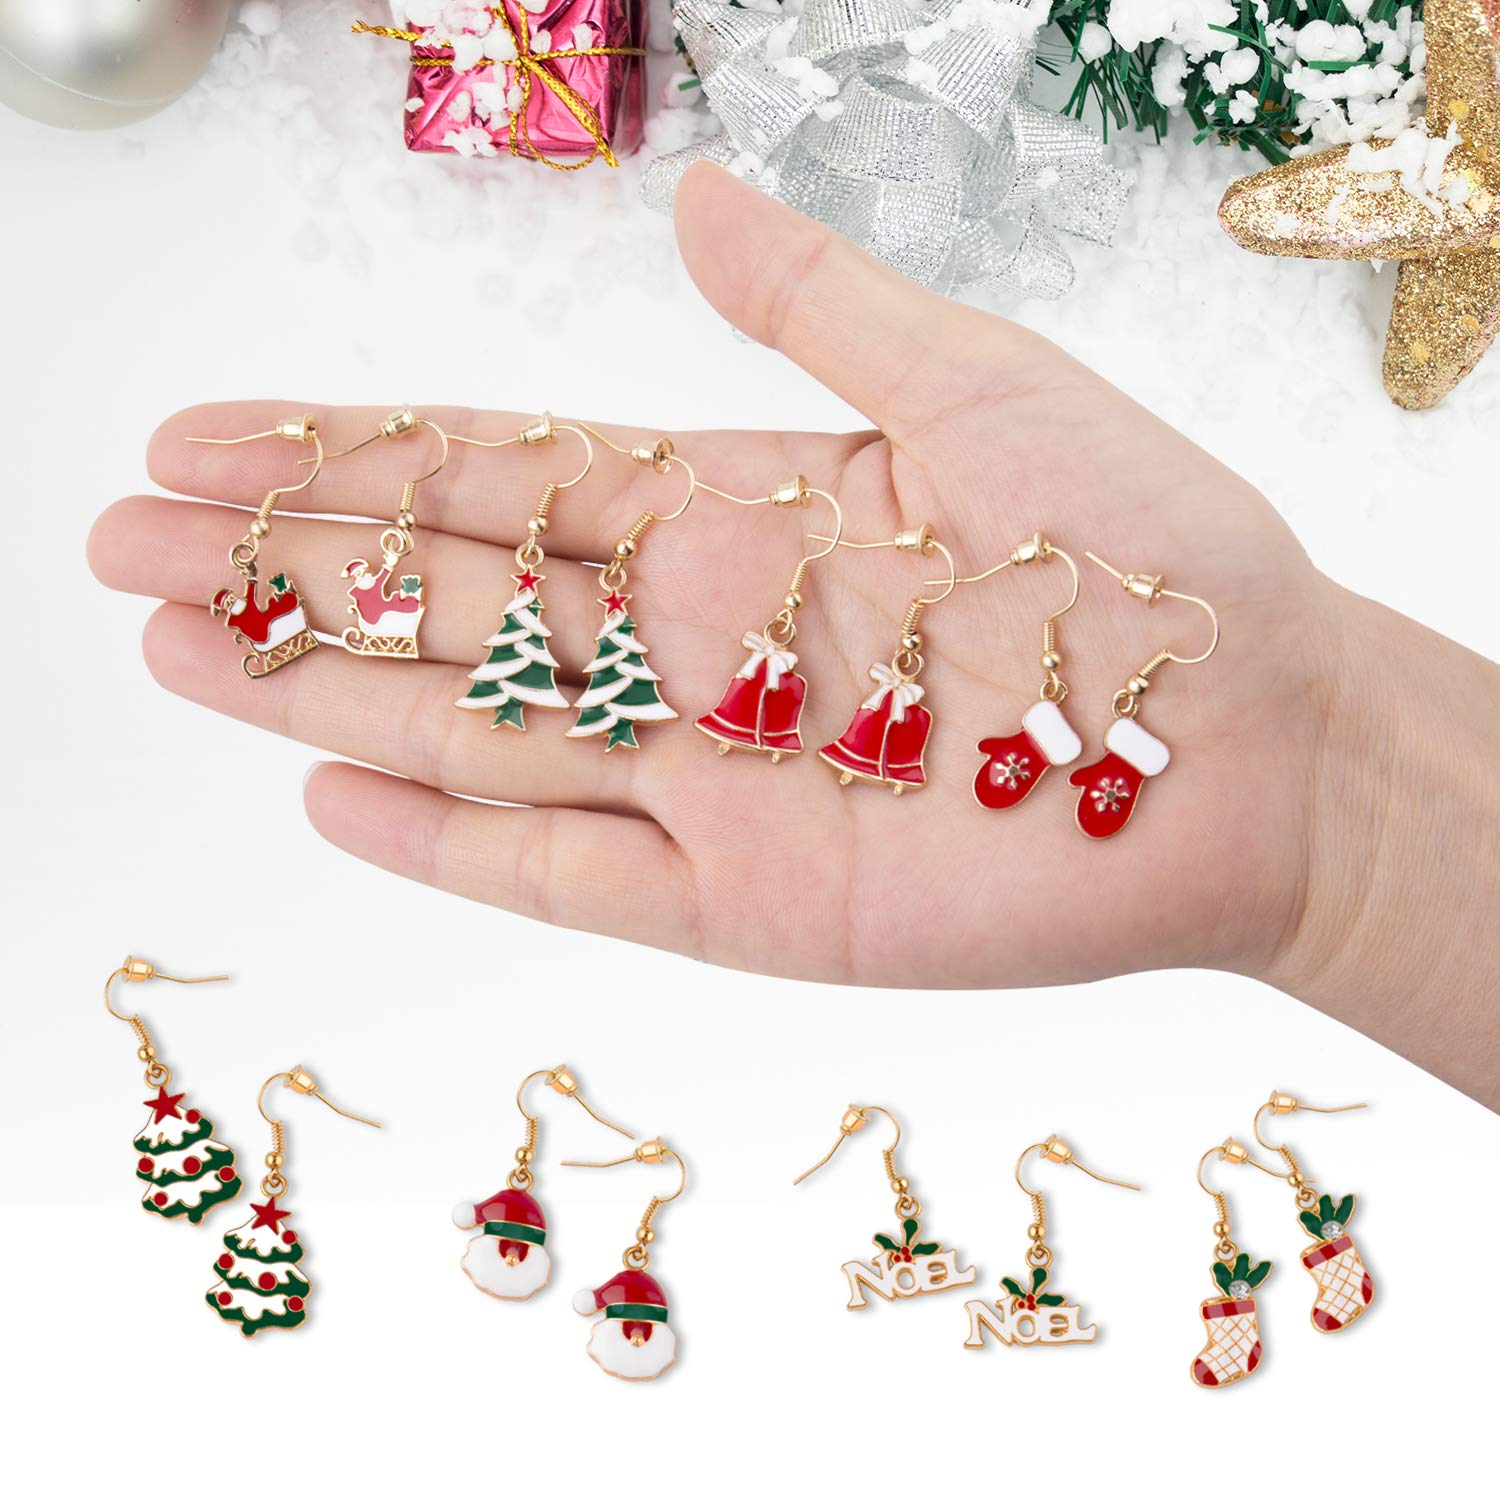 Christmas Earrings Set gifts for Womens Girls Thanksgiving Xmas Jewelry Snowman Hand Sock Santa Claus Christmas Tree Bell Drop Dangle Earrings Holiday Jewelry